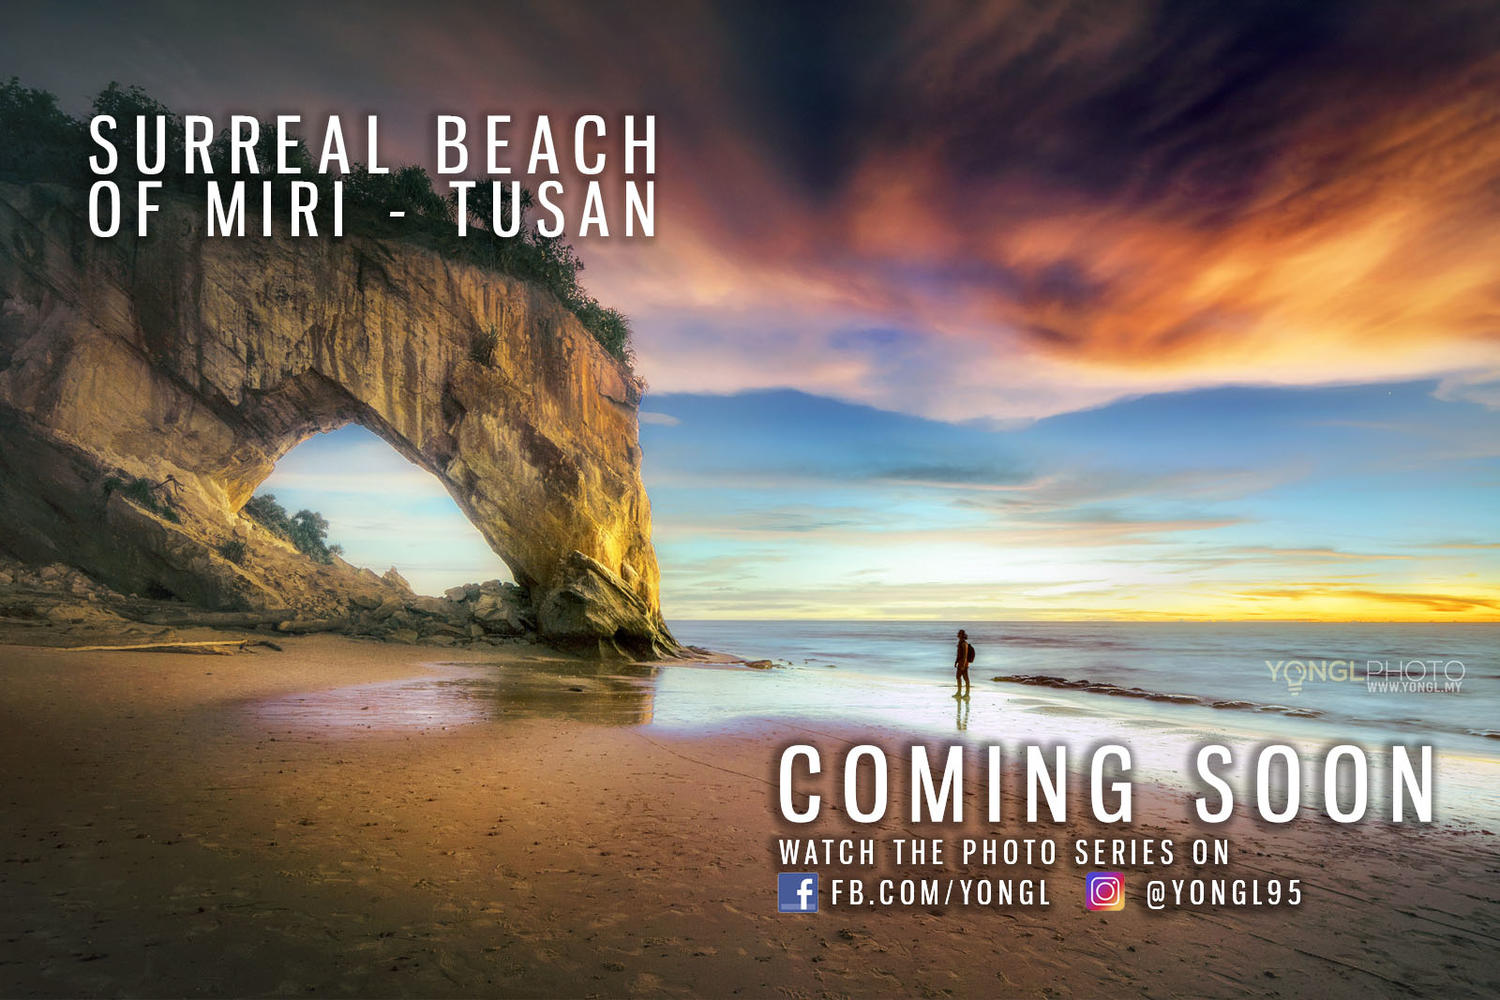 Surreal Beach of Miri - Tusan